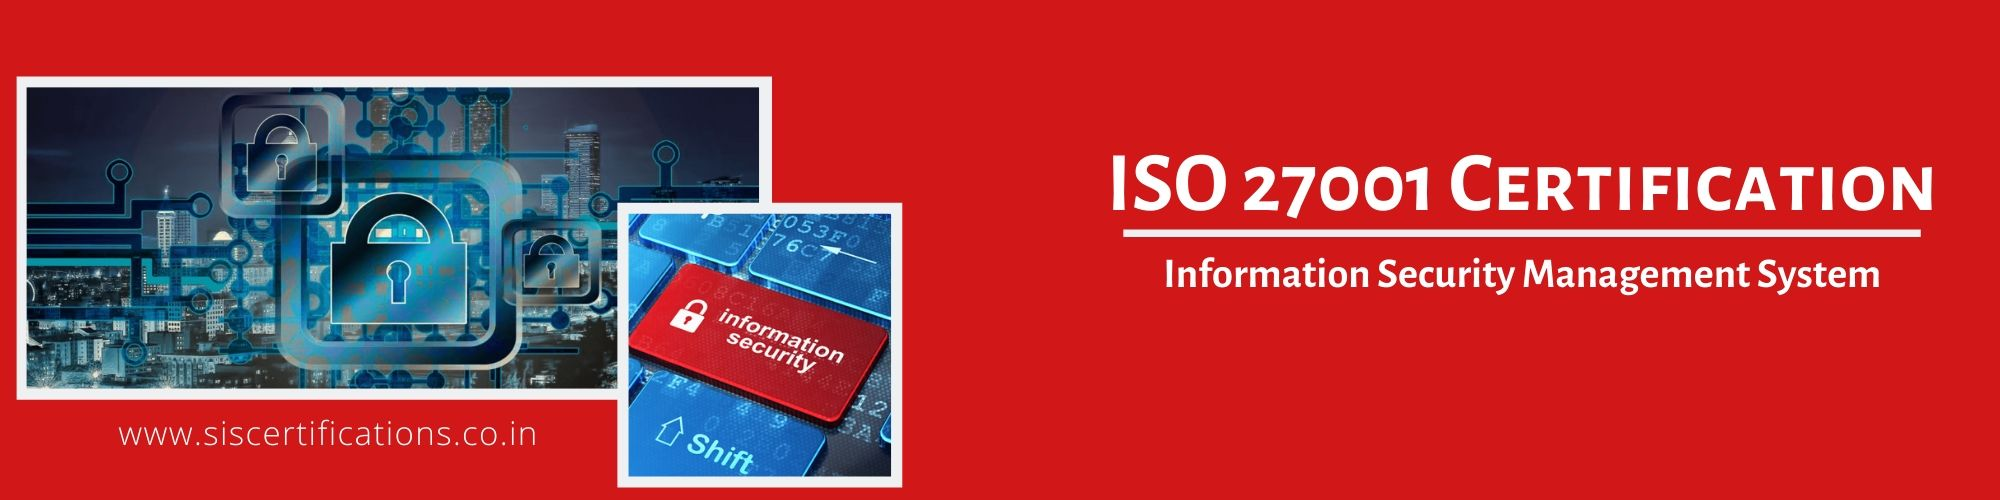 ISO 27001 Certification, ISO 27001 Certification